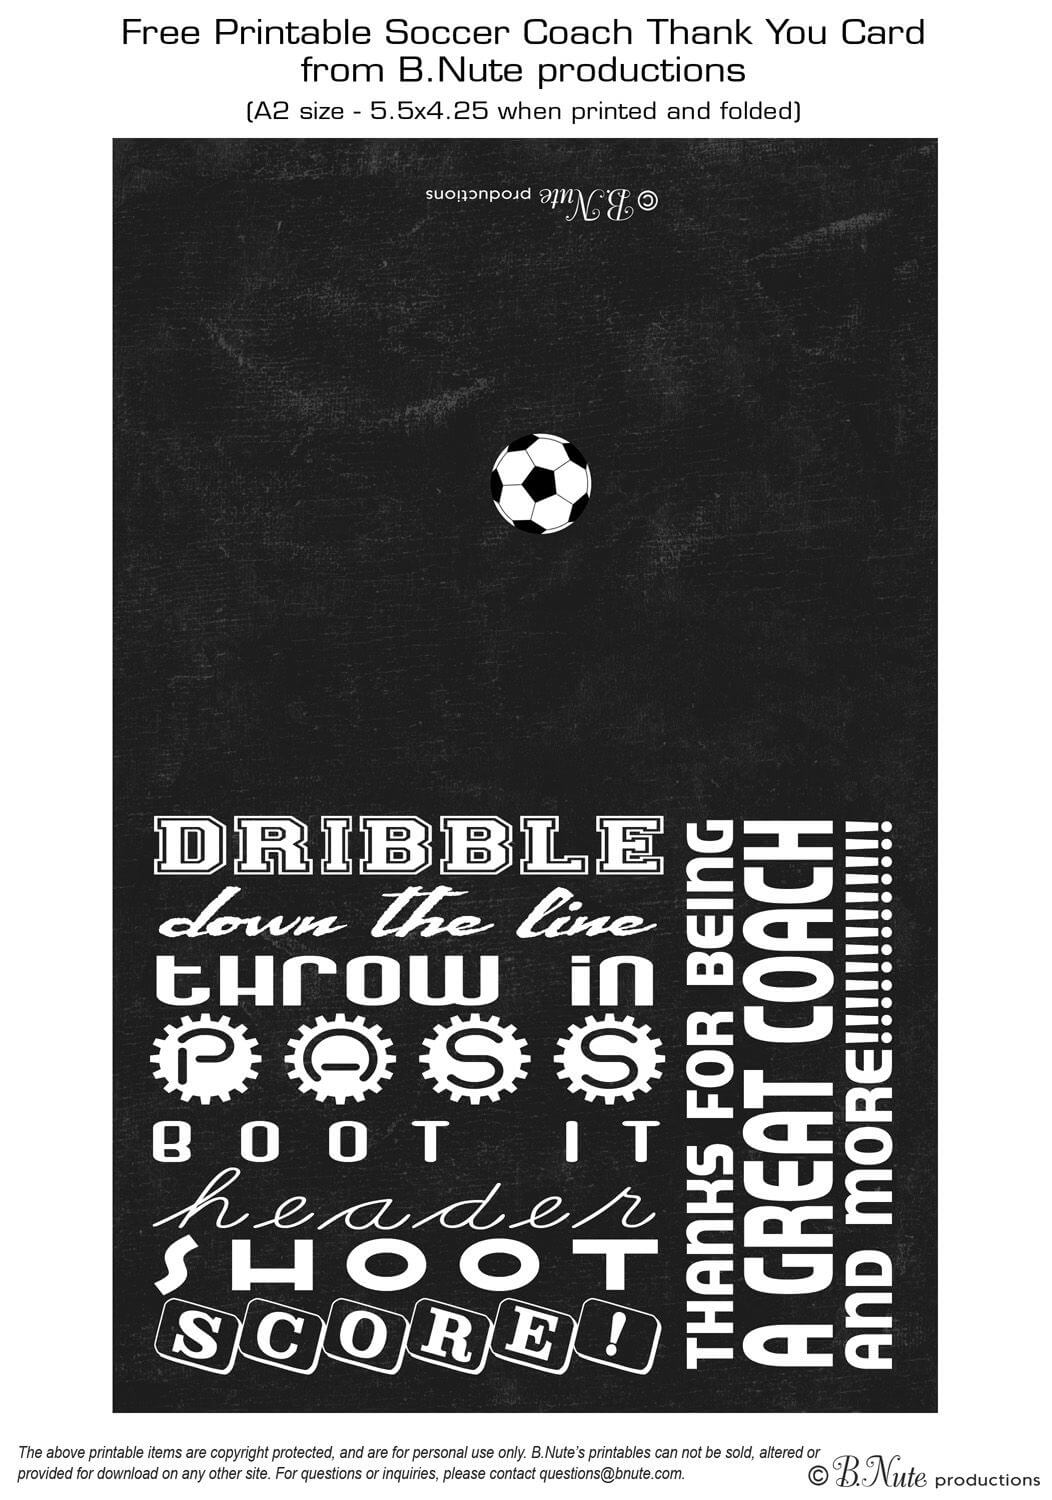 Free Printable Soccer Coach Thank You Card From B.nute pertaining to Soccer Thank You Card Template